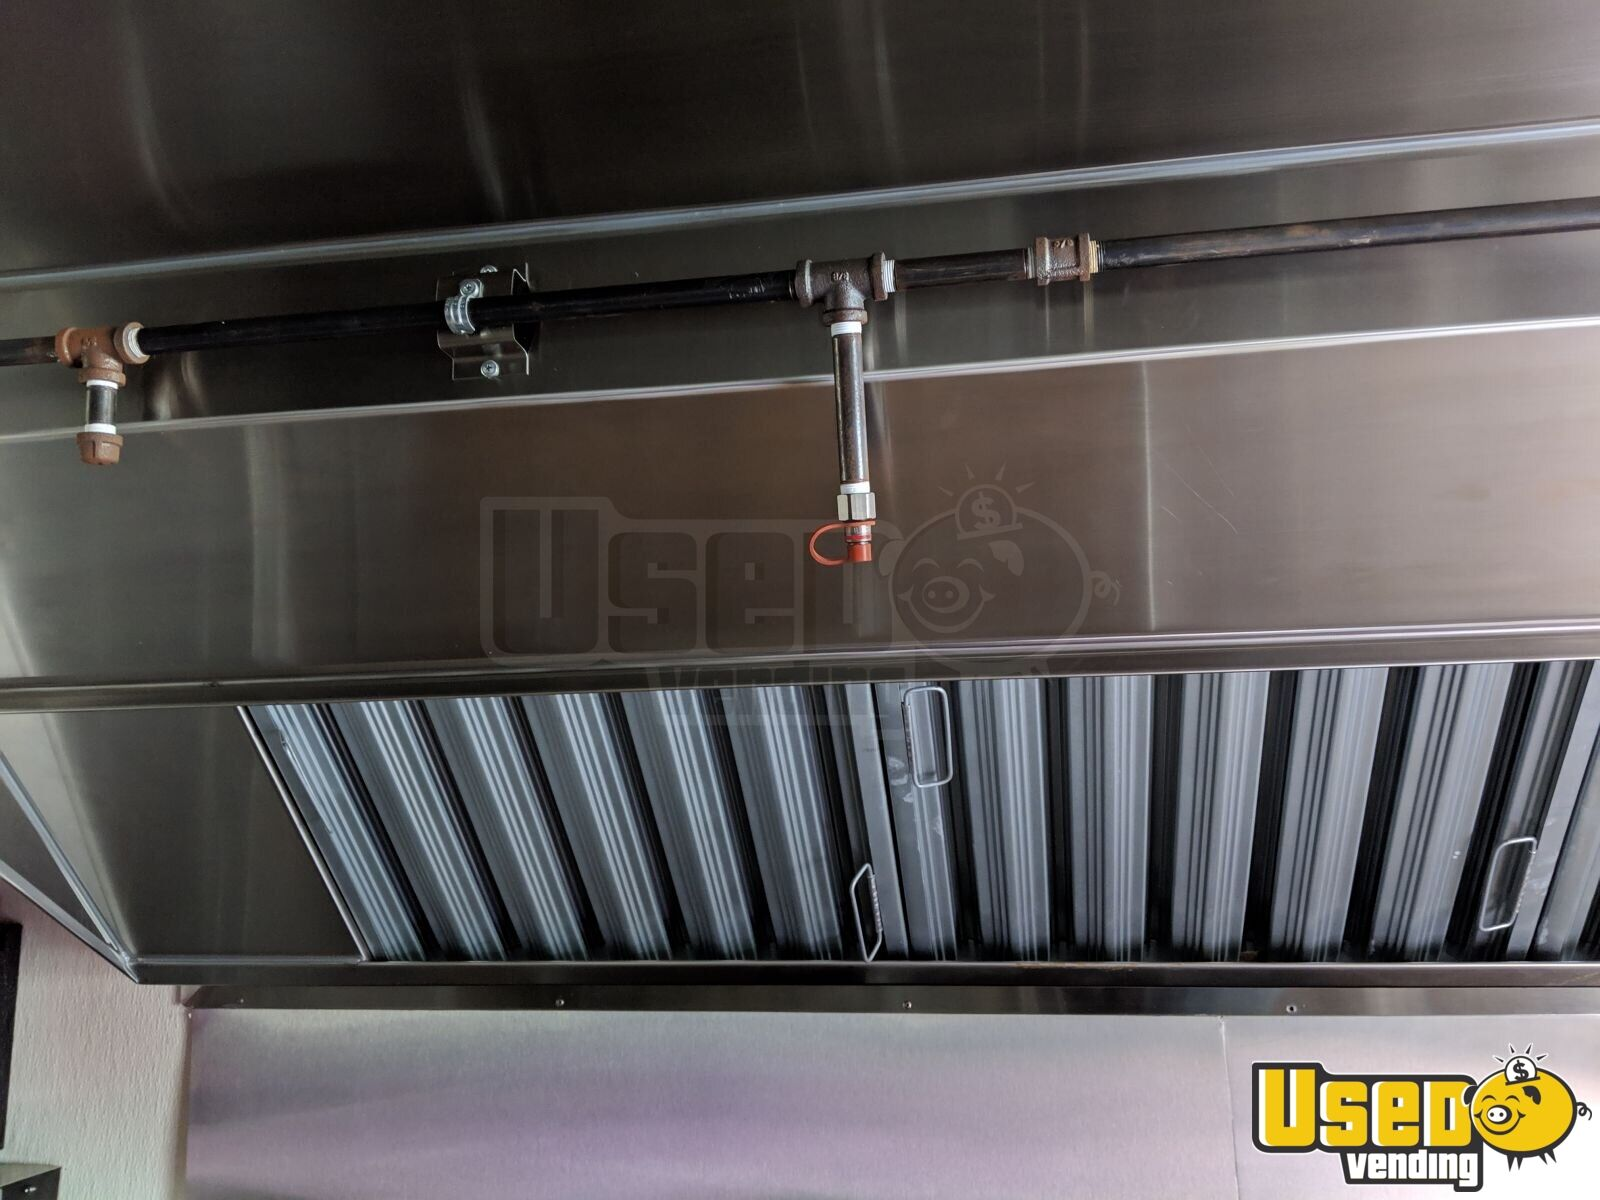 1997 Chevy P 30 All-purpose Food Truck Exhaust Hood Indiana Gas Engine for Sale - 8